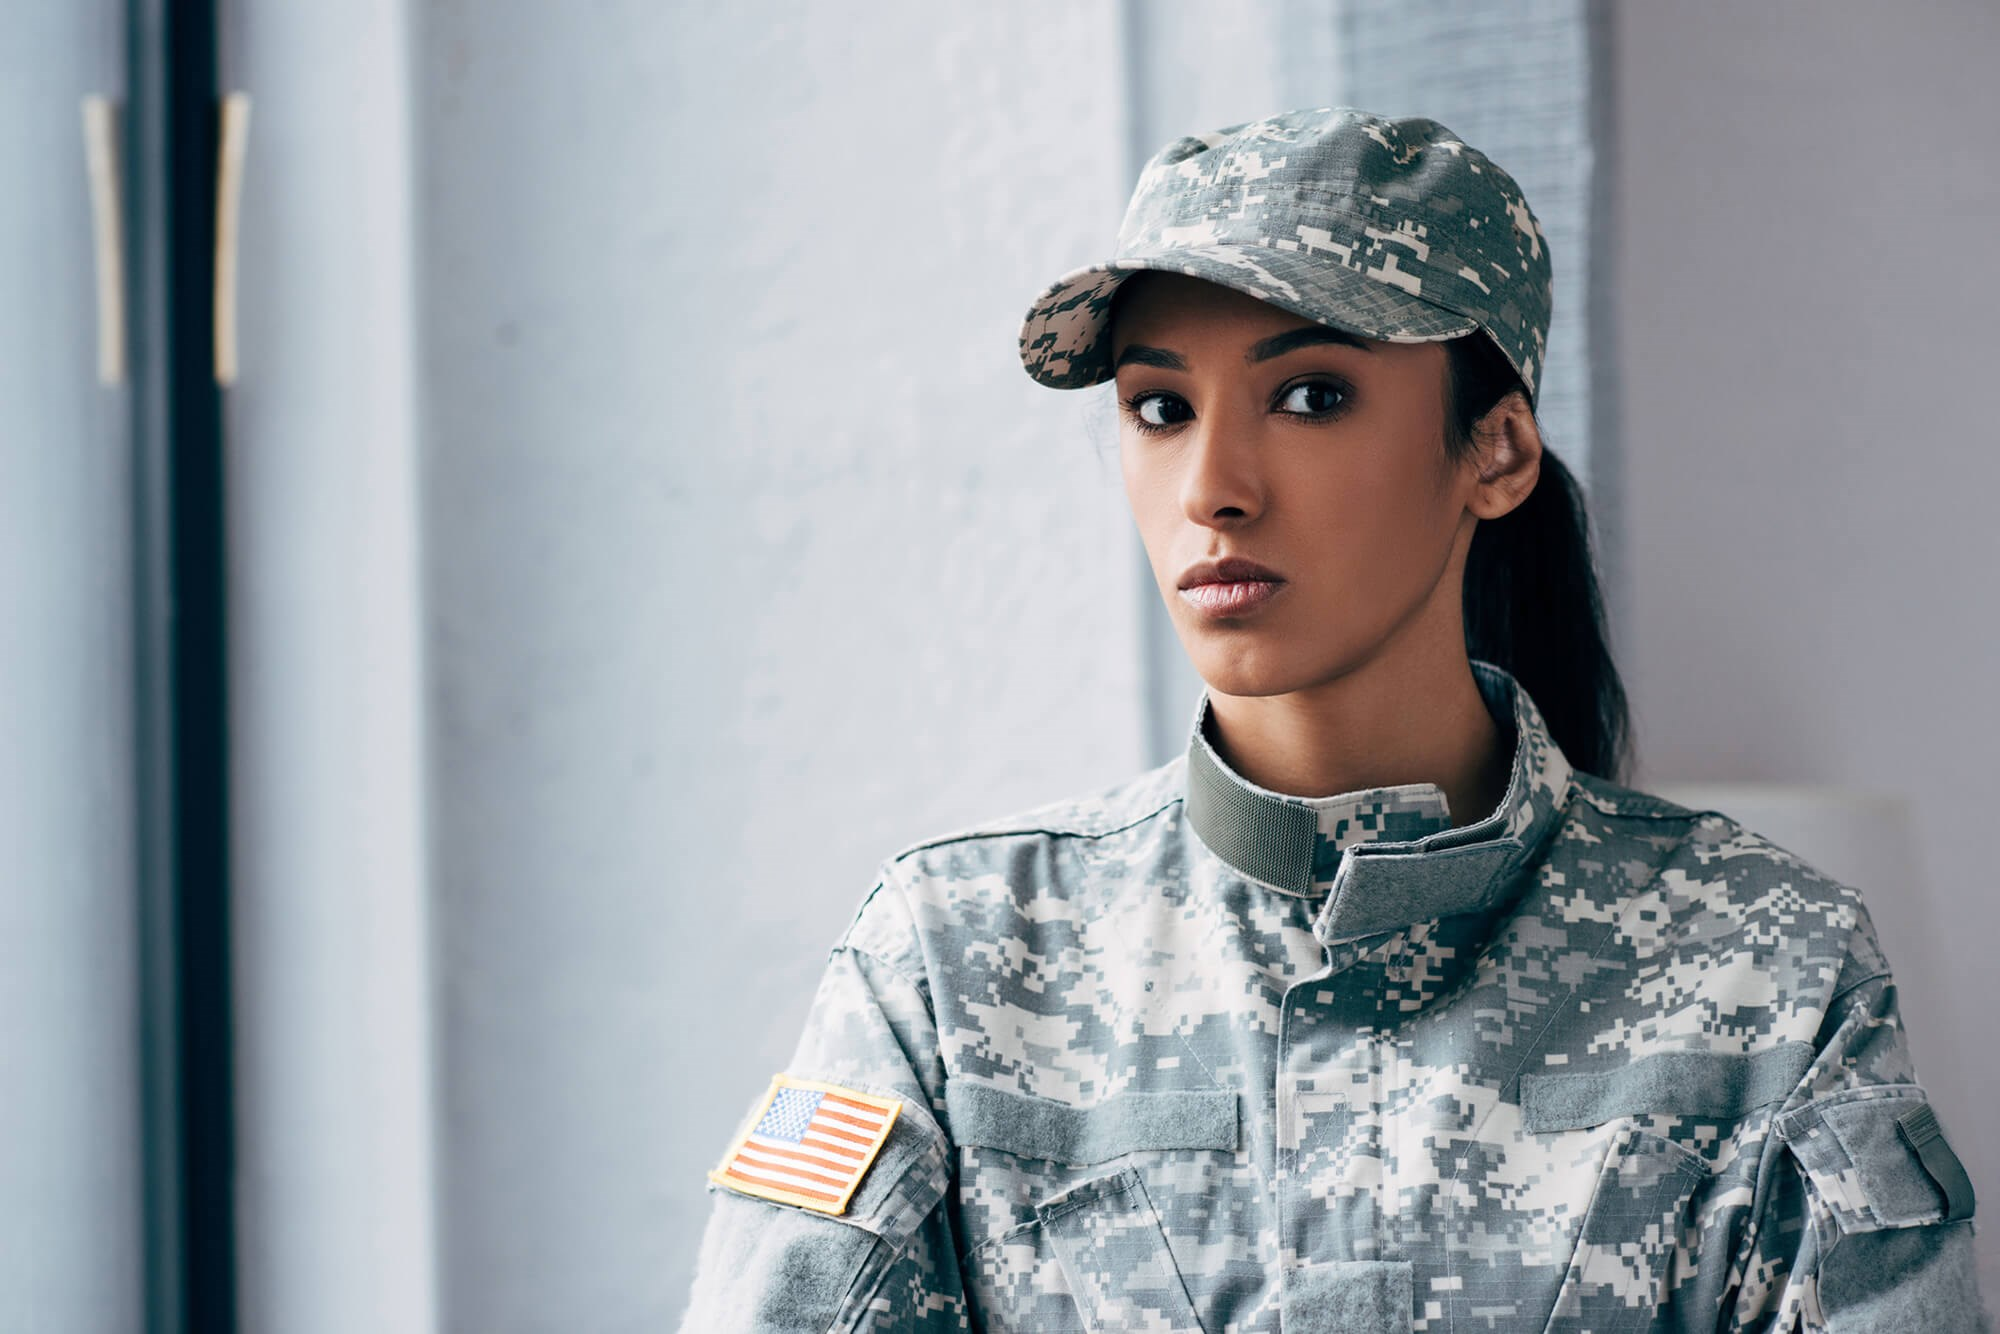 Women veterans may be at a higher risk of breast cancer due to unique service-related exposures.